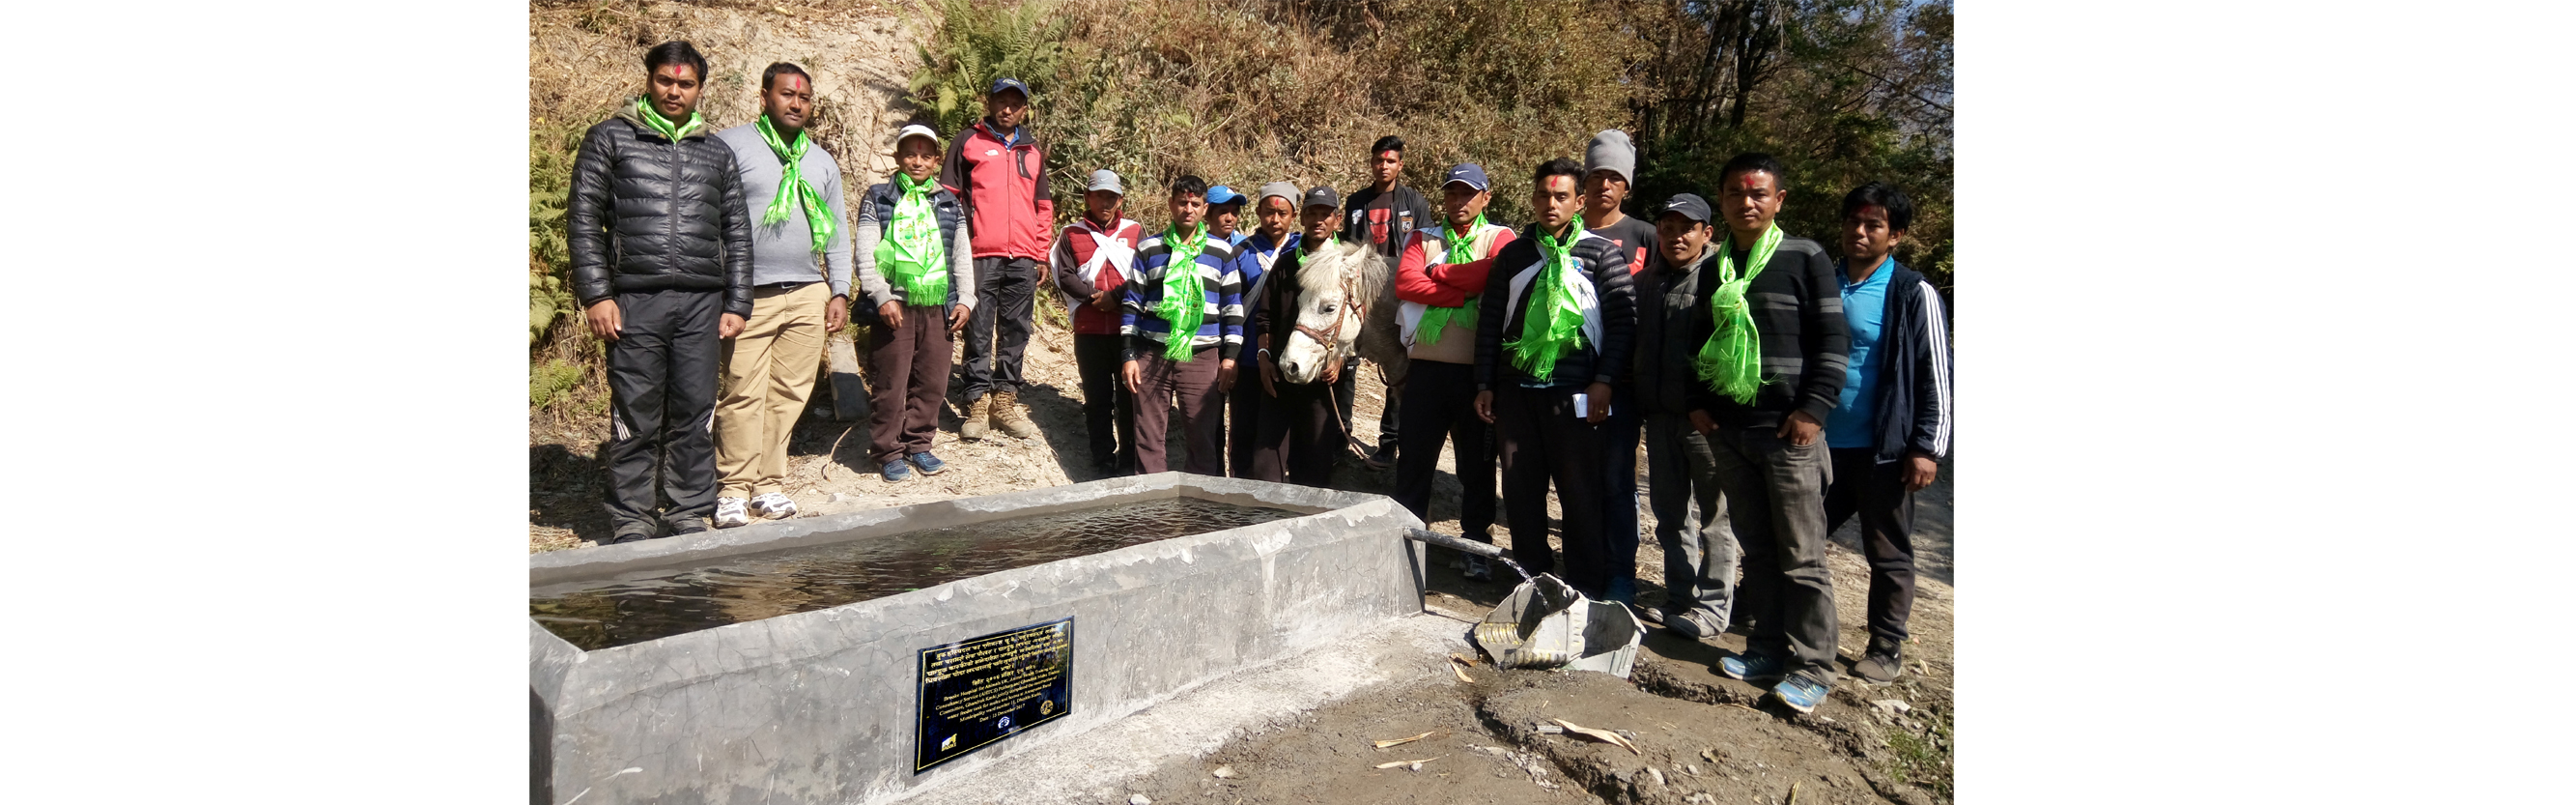 Water Trough for equines built at Ghandruk, Kaski in partnership with Ghandruk Mule Traders Union